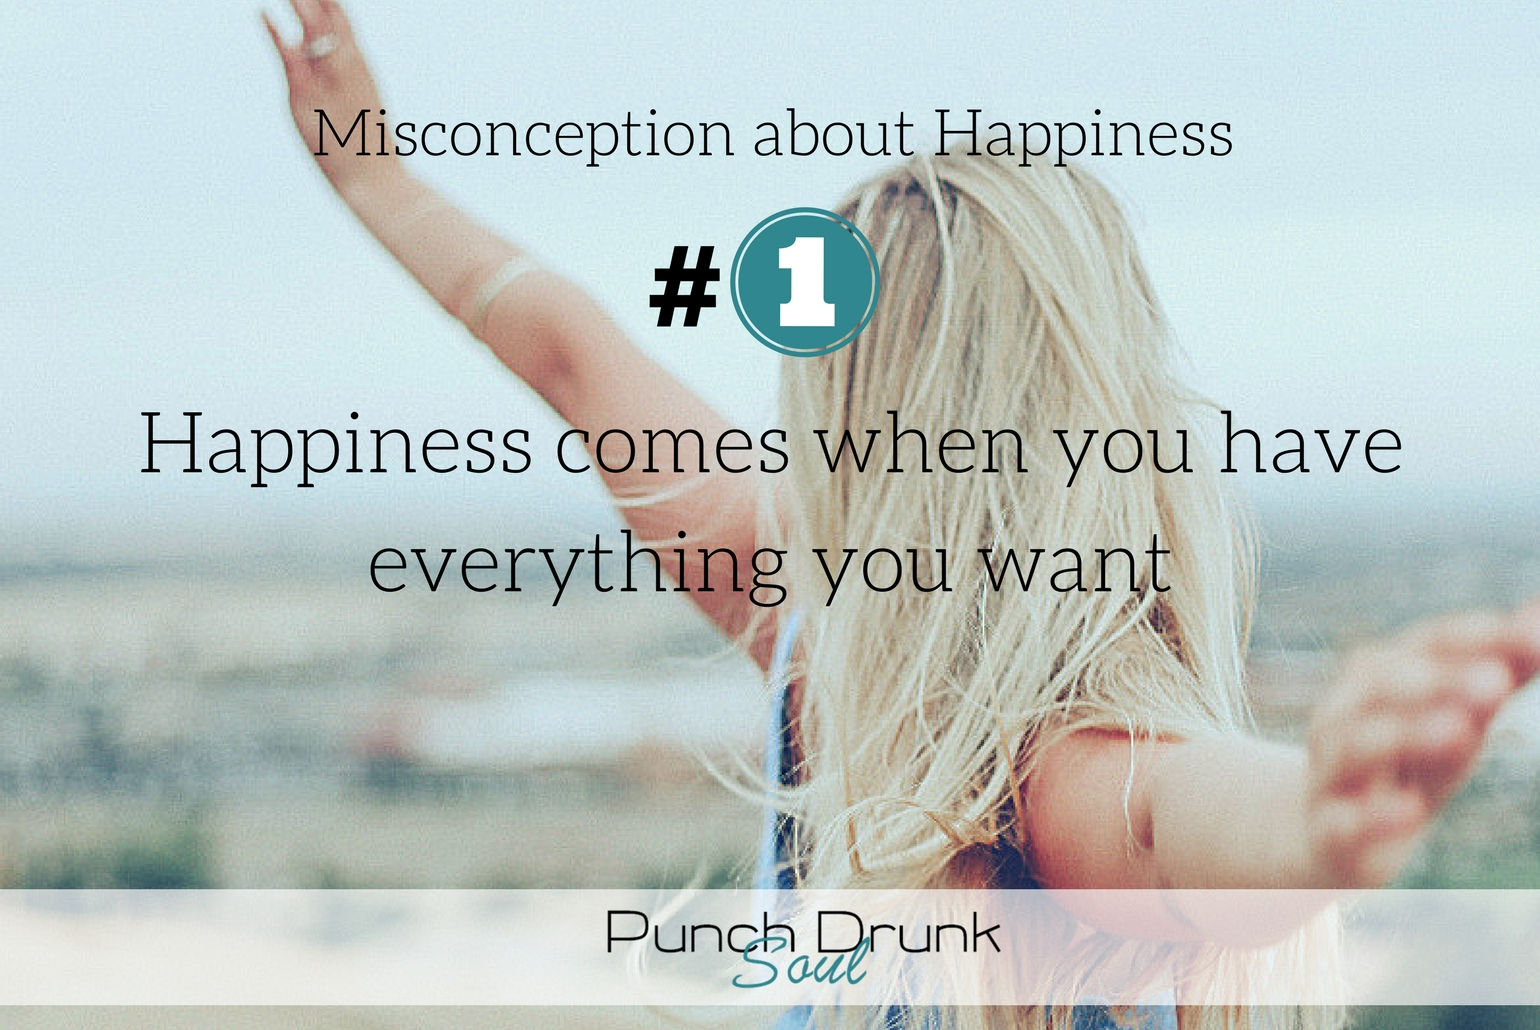 Misconceptions about happiness, How to be happy, pursuit of happiness, happiness, being happy, Key to happiness, how to find happiness